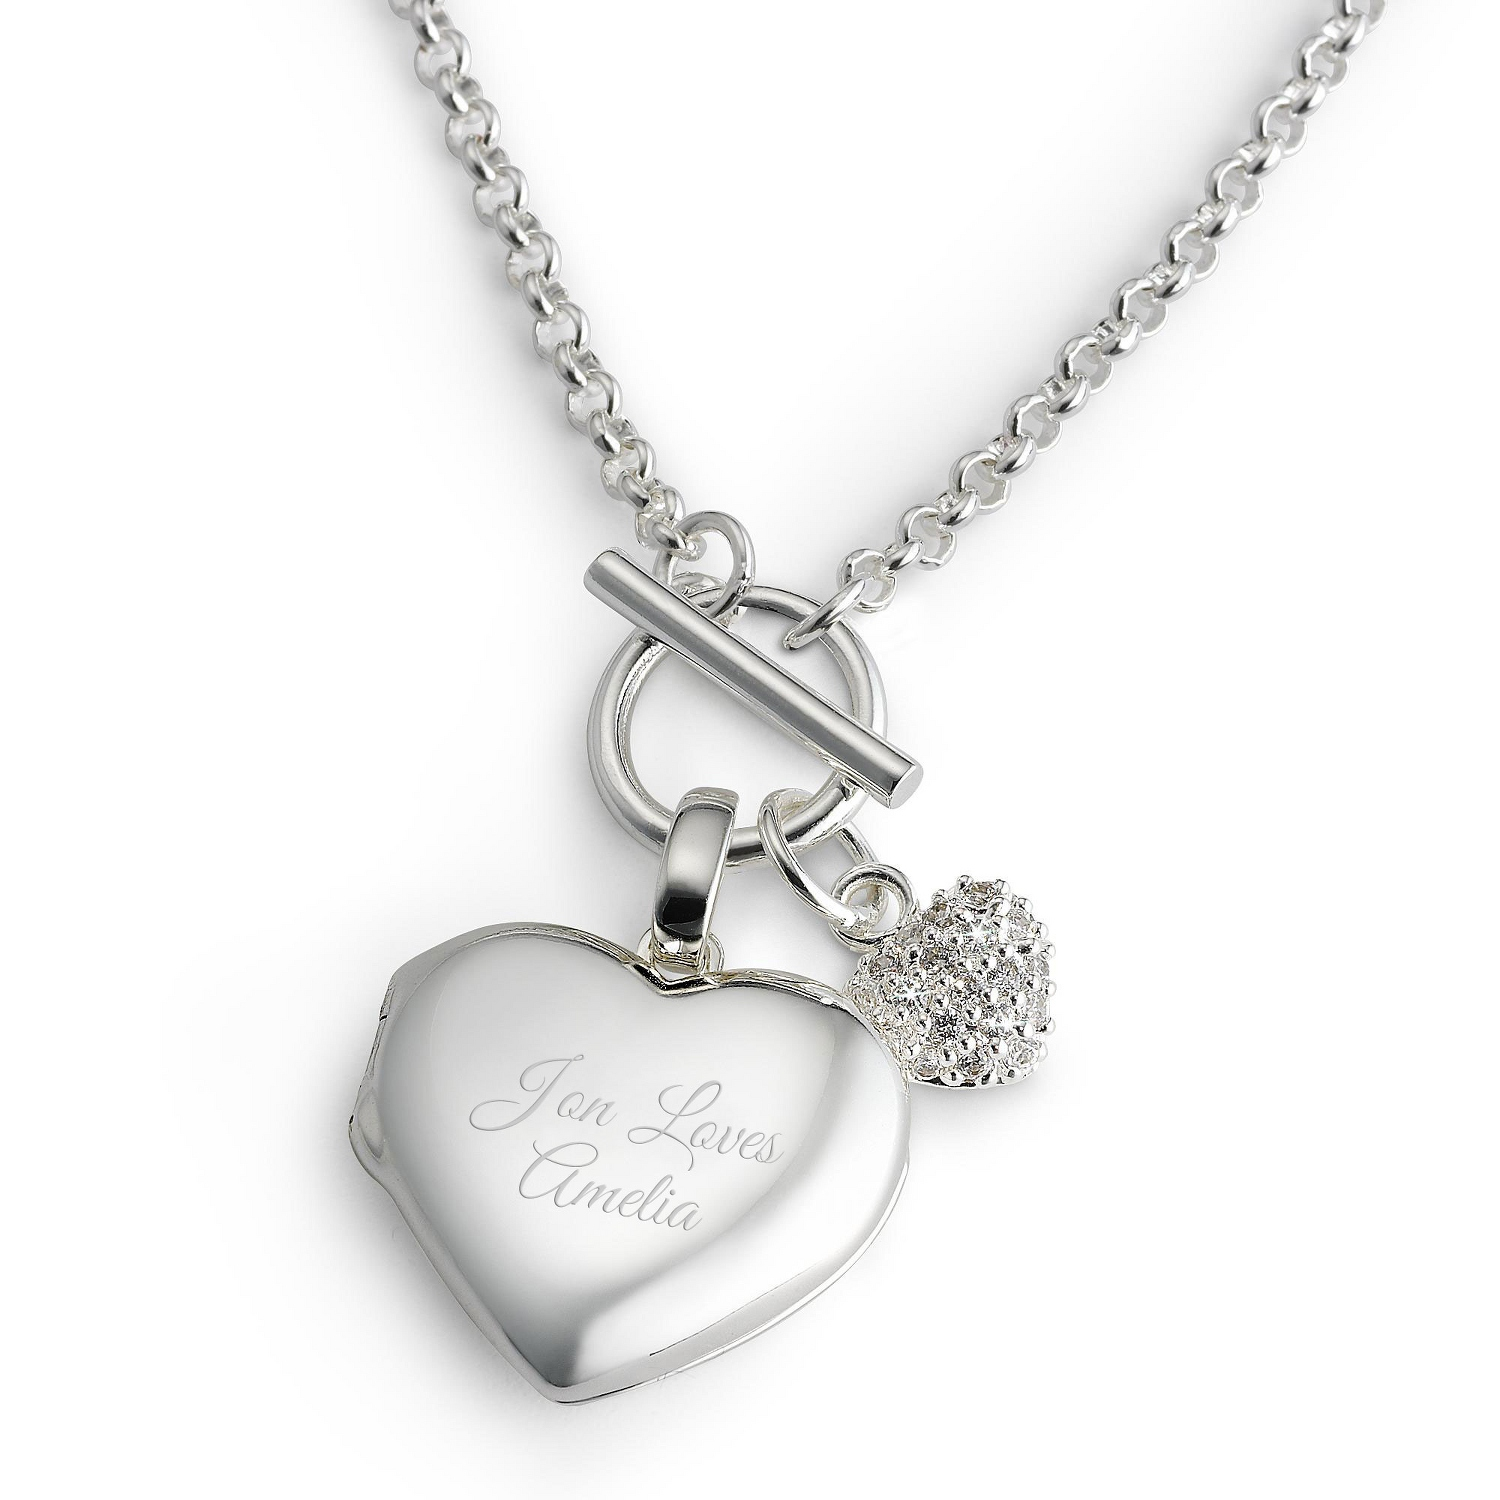 gifts gettingpersonal engraved oval locket a silver shaped lockets htm uk necklace co